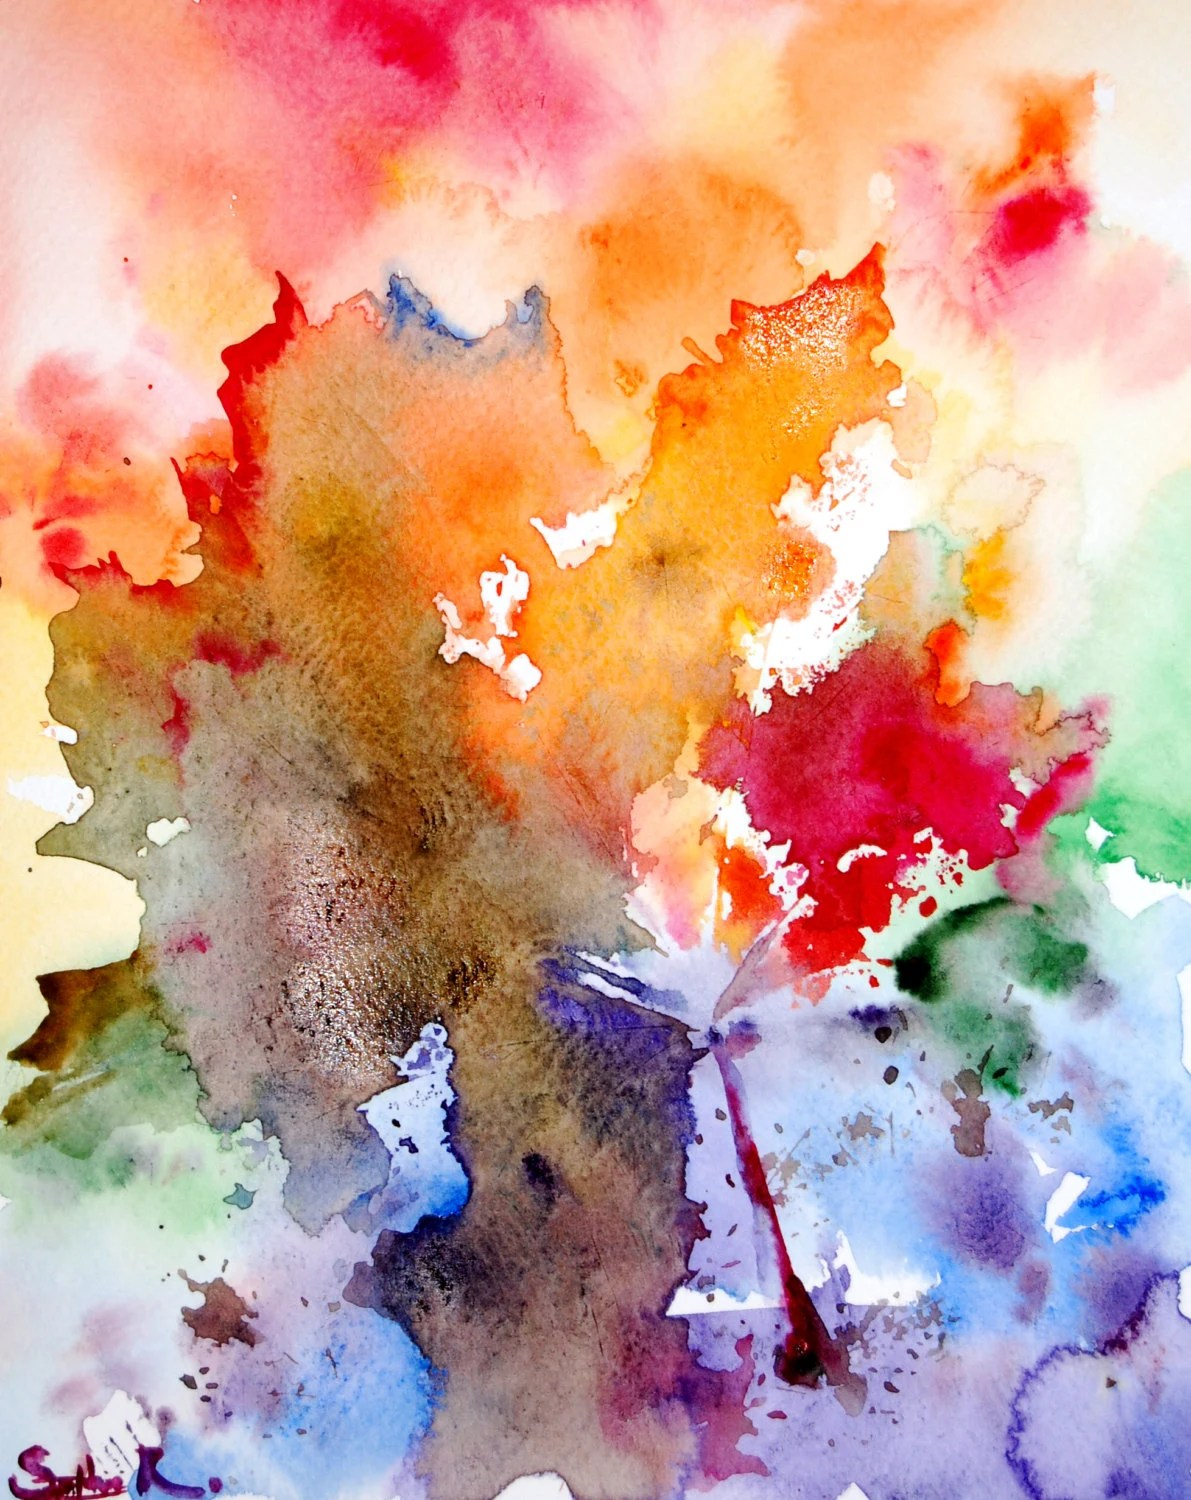 Fall Wooden Wallpaper Original Watercolor Painting Abstract Rainbow Leaves